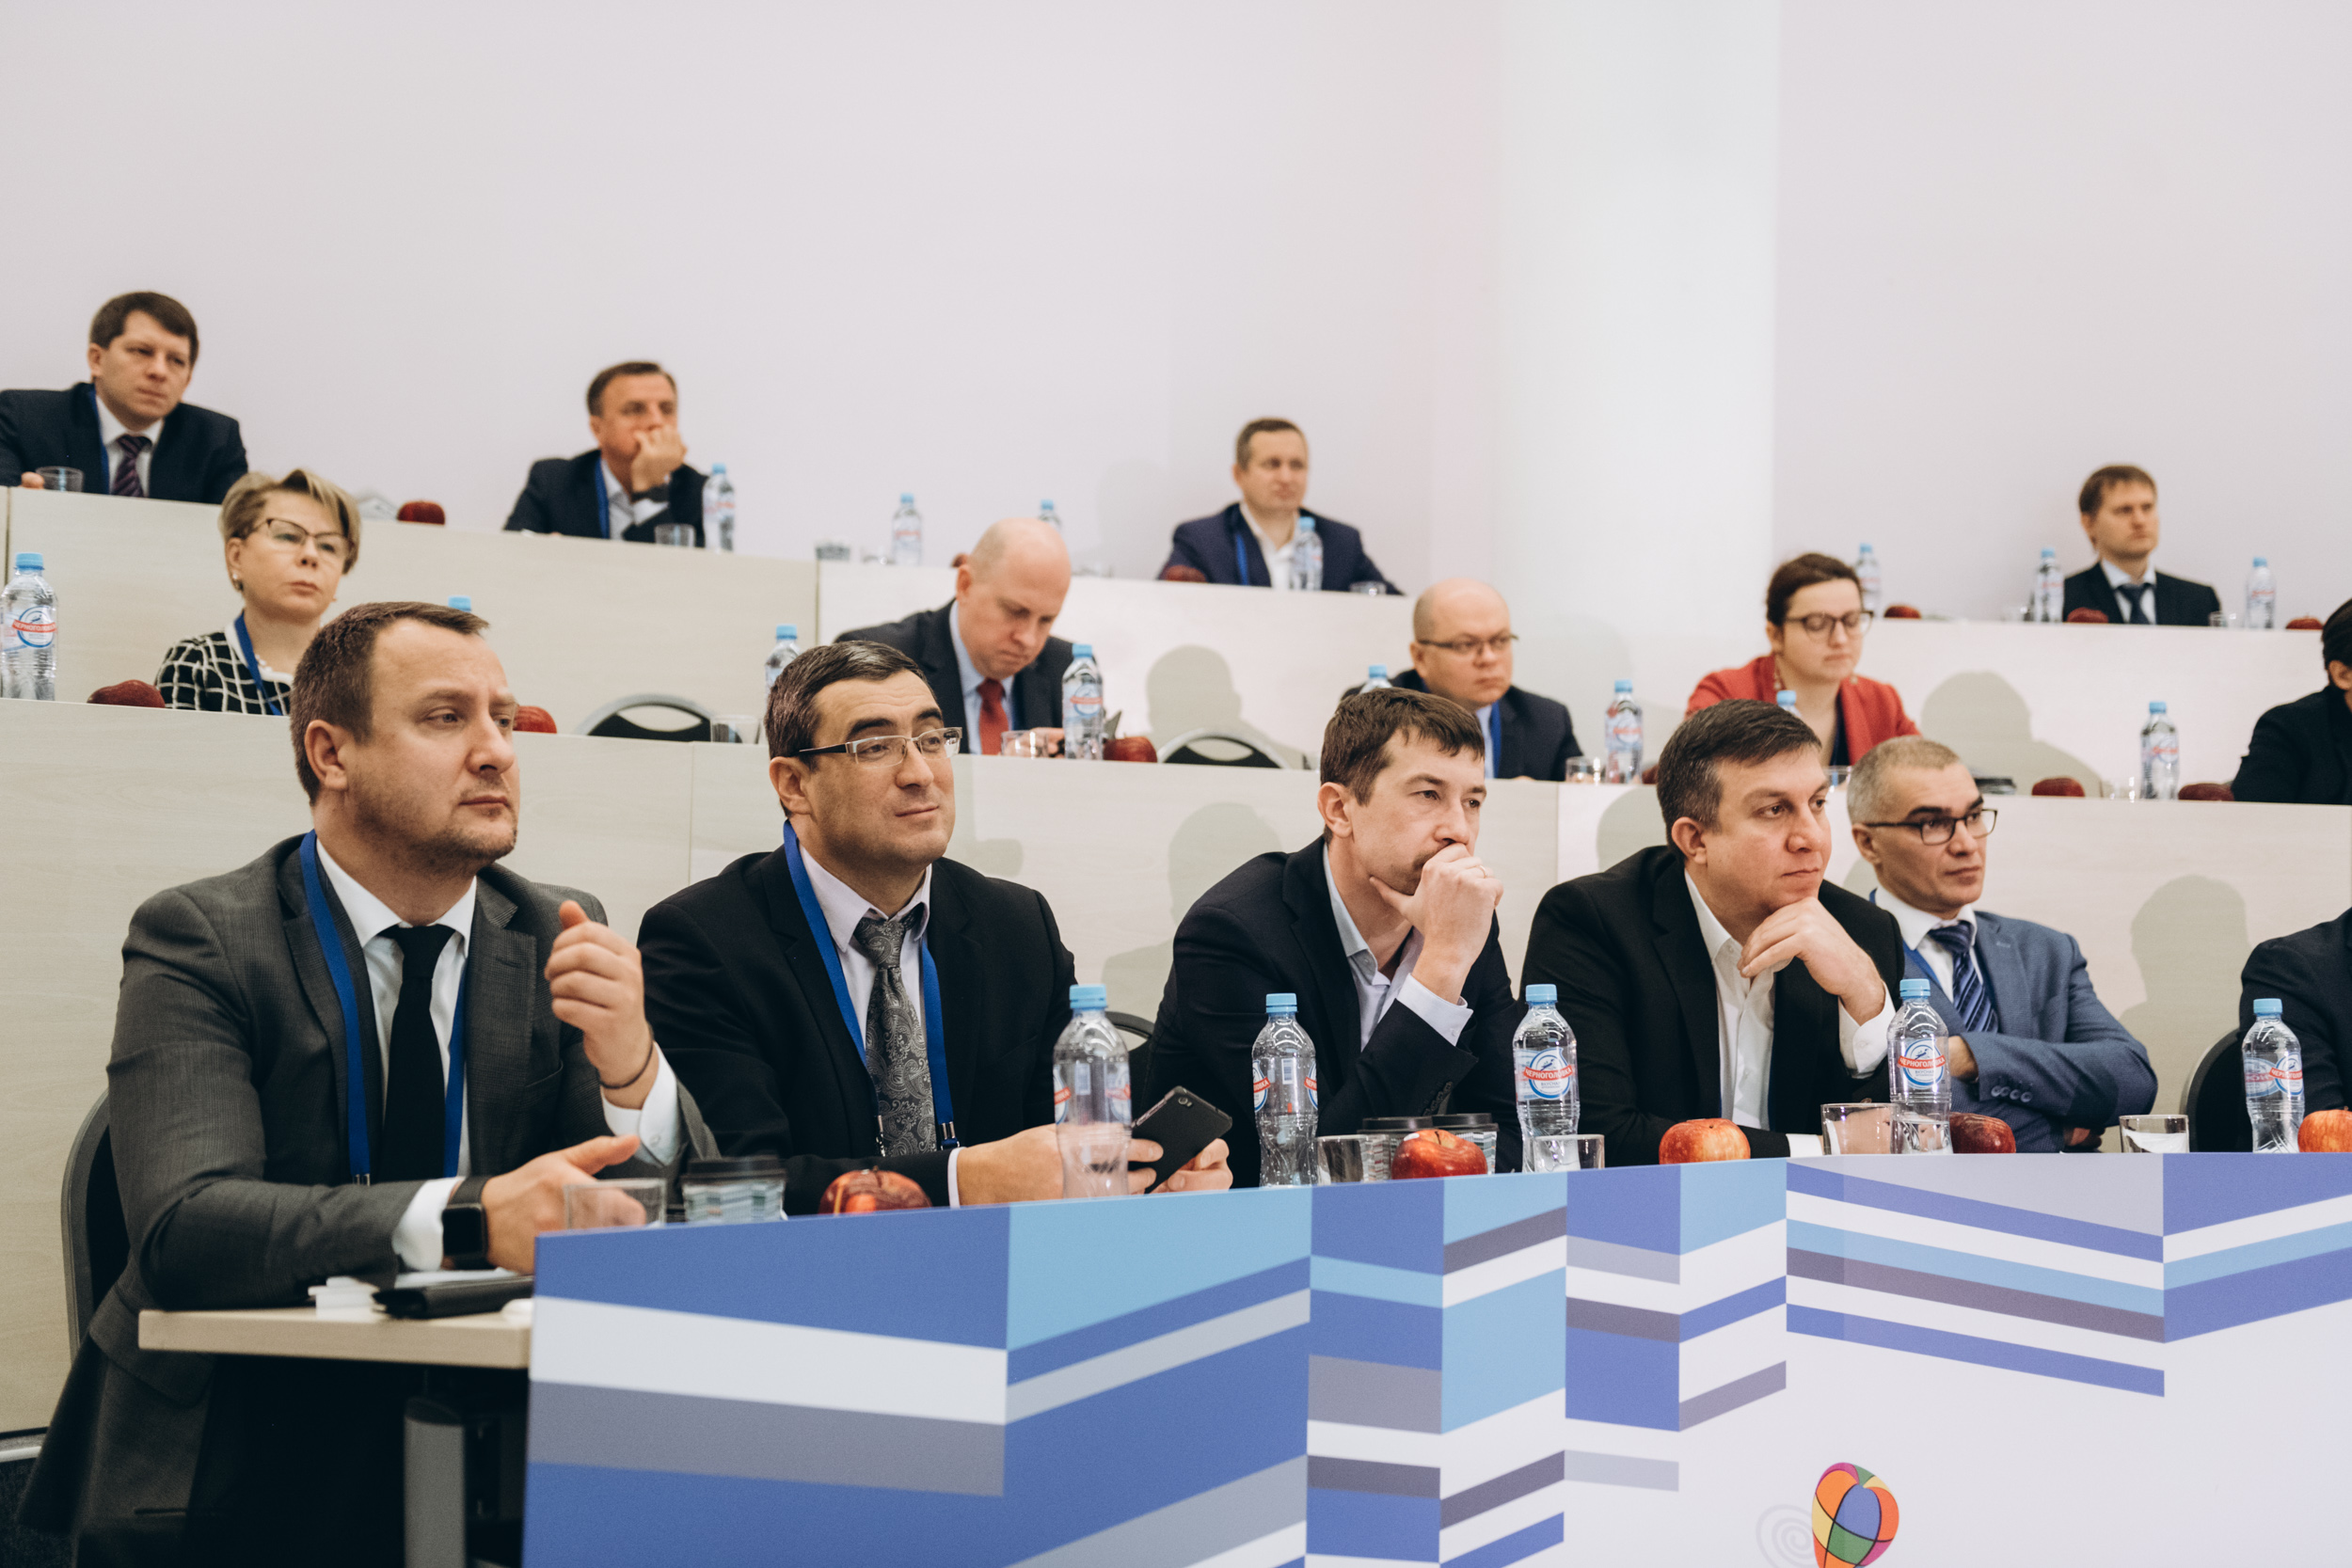 NORCHEM Group took part in the 2nd Oil Dialogue on the 18th December 2018 in SKOLKOVO